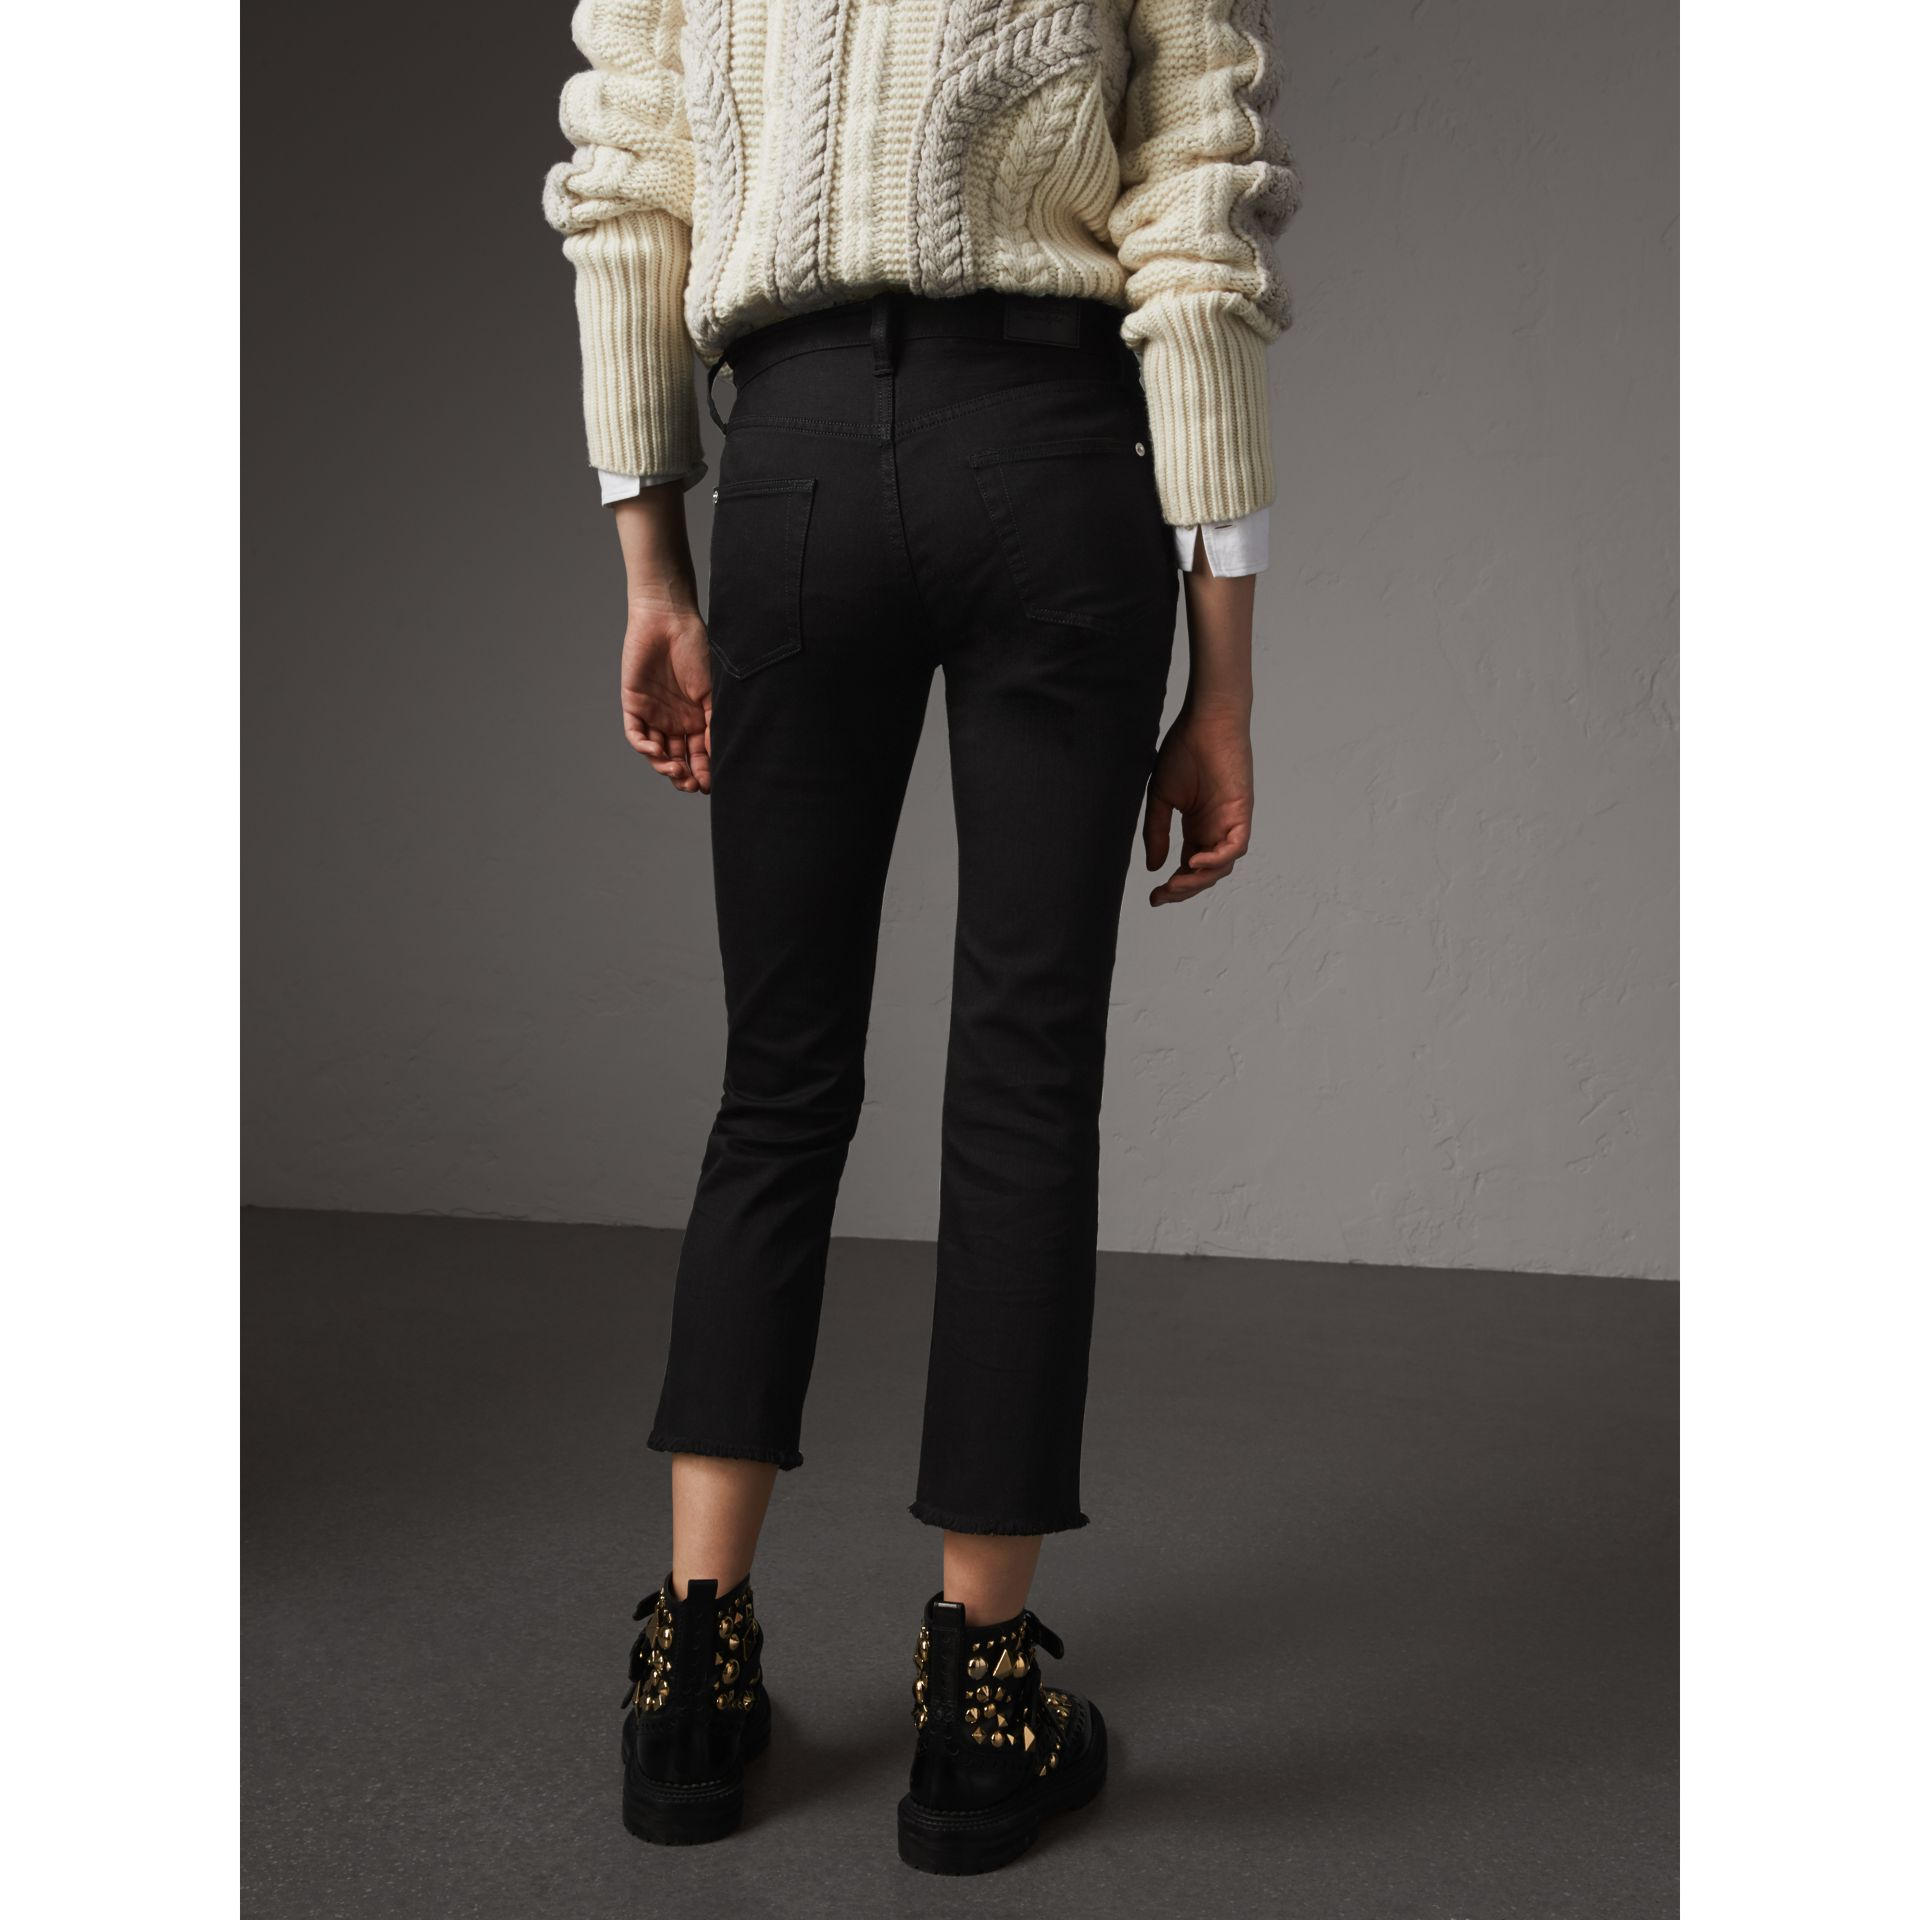 Jean 7/8 avec bords frangés (Noir) - Femme | Burberry Canada - photo de la galerie 2